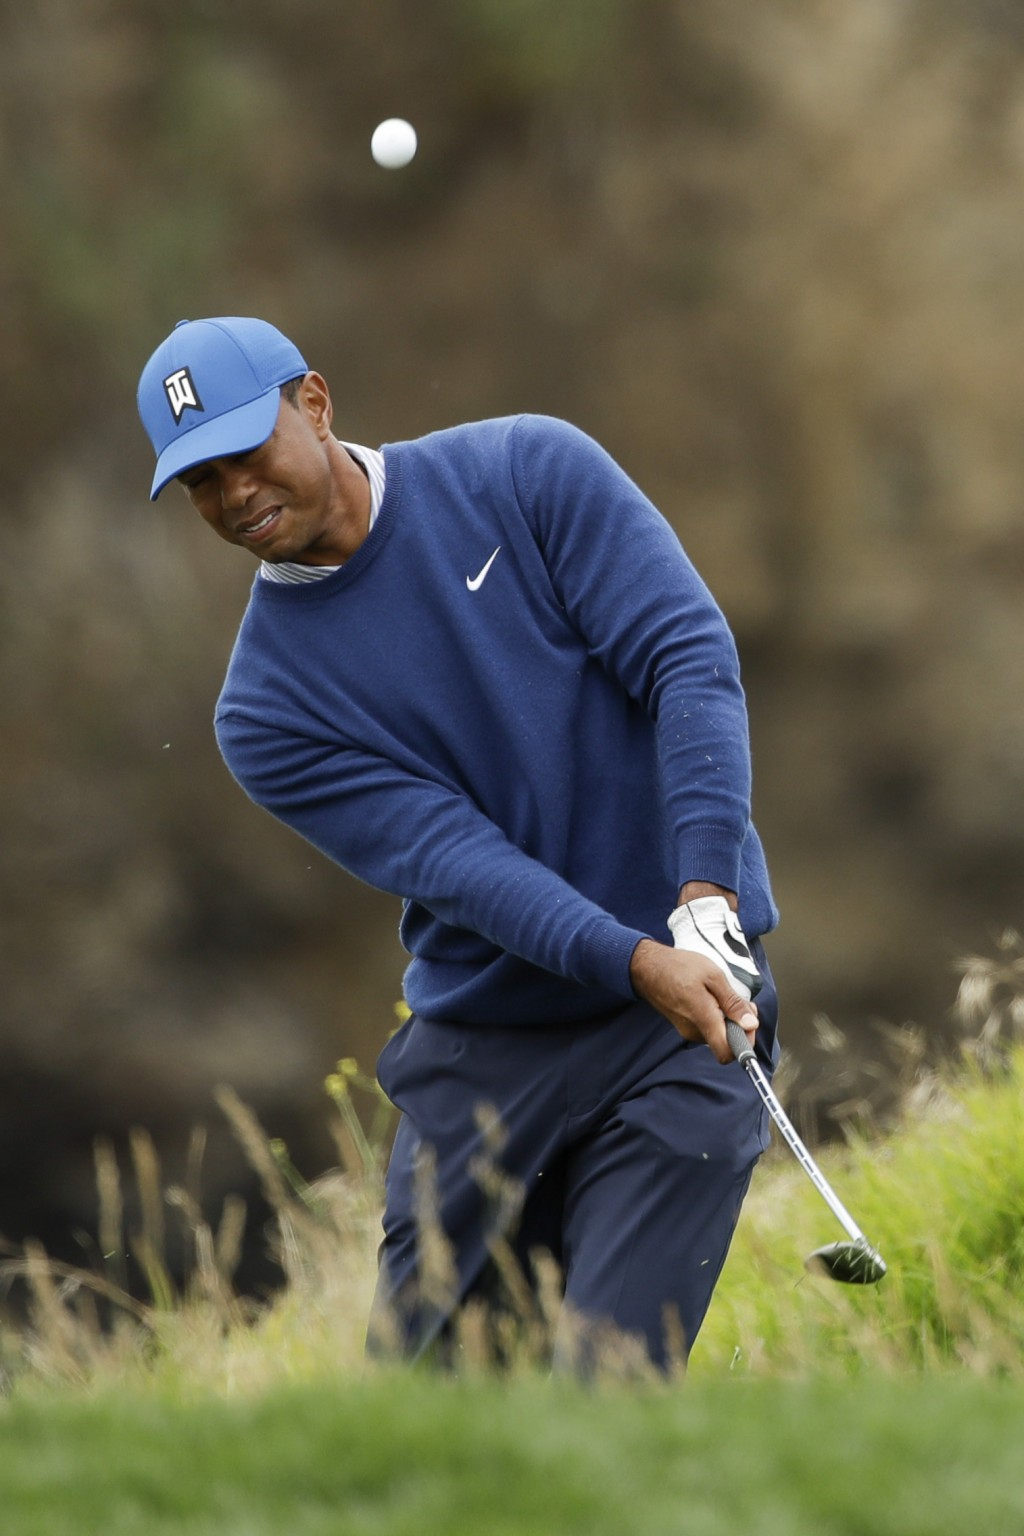 Tiger Woods hits from the rough on the eighth hole during the second round of the U.S. Open Championship golf tournament Friday, June 14, 2019, in Peb